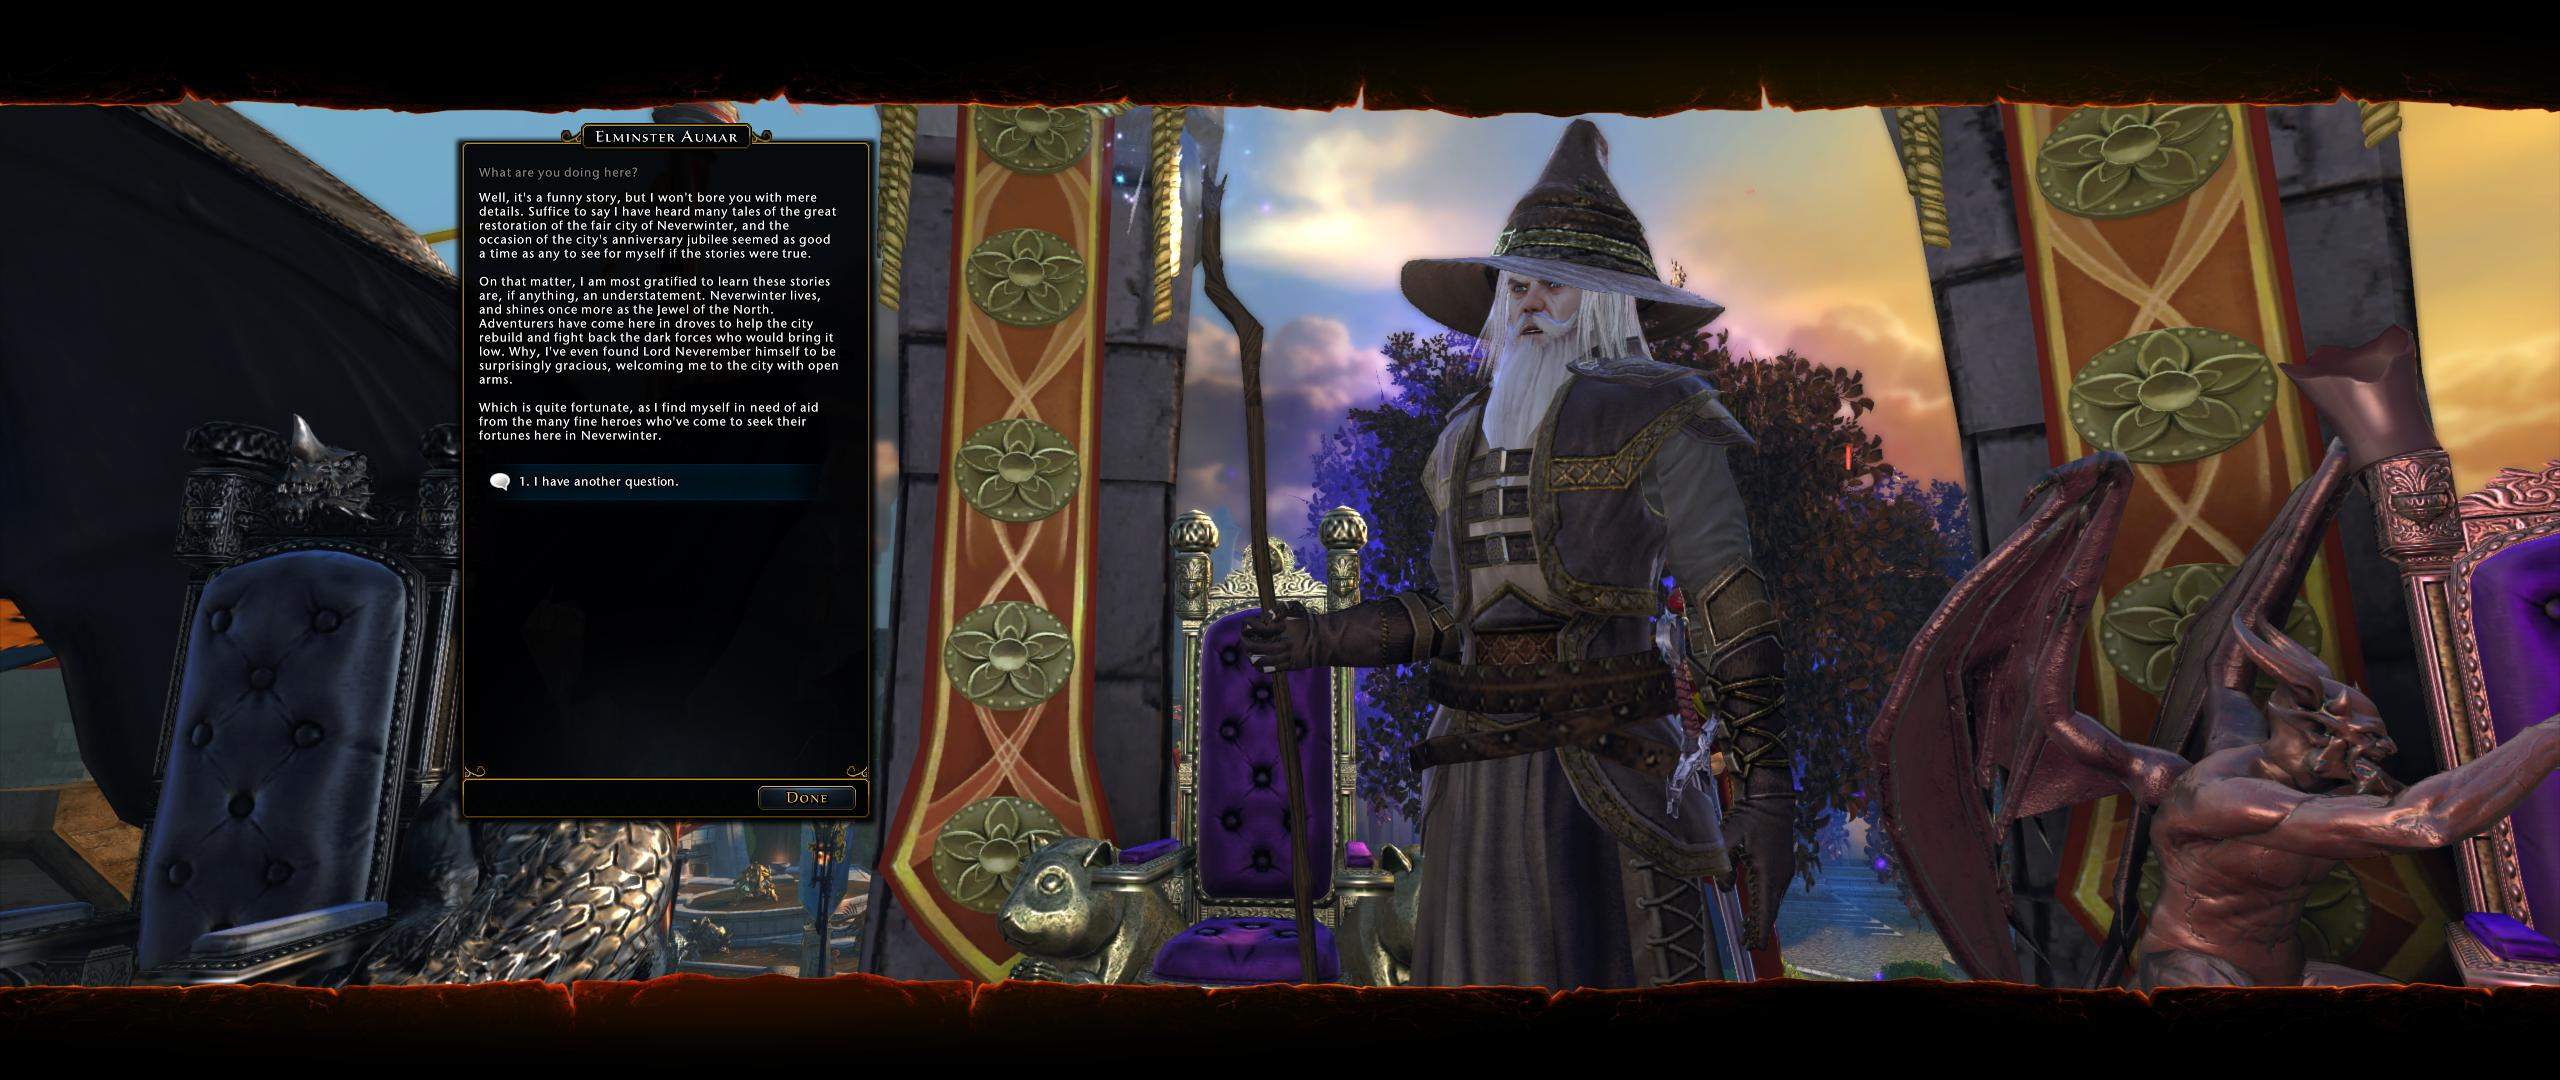 Neverwinter closes in on 18 million players, and we've